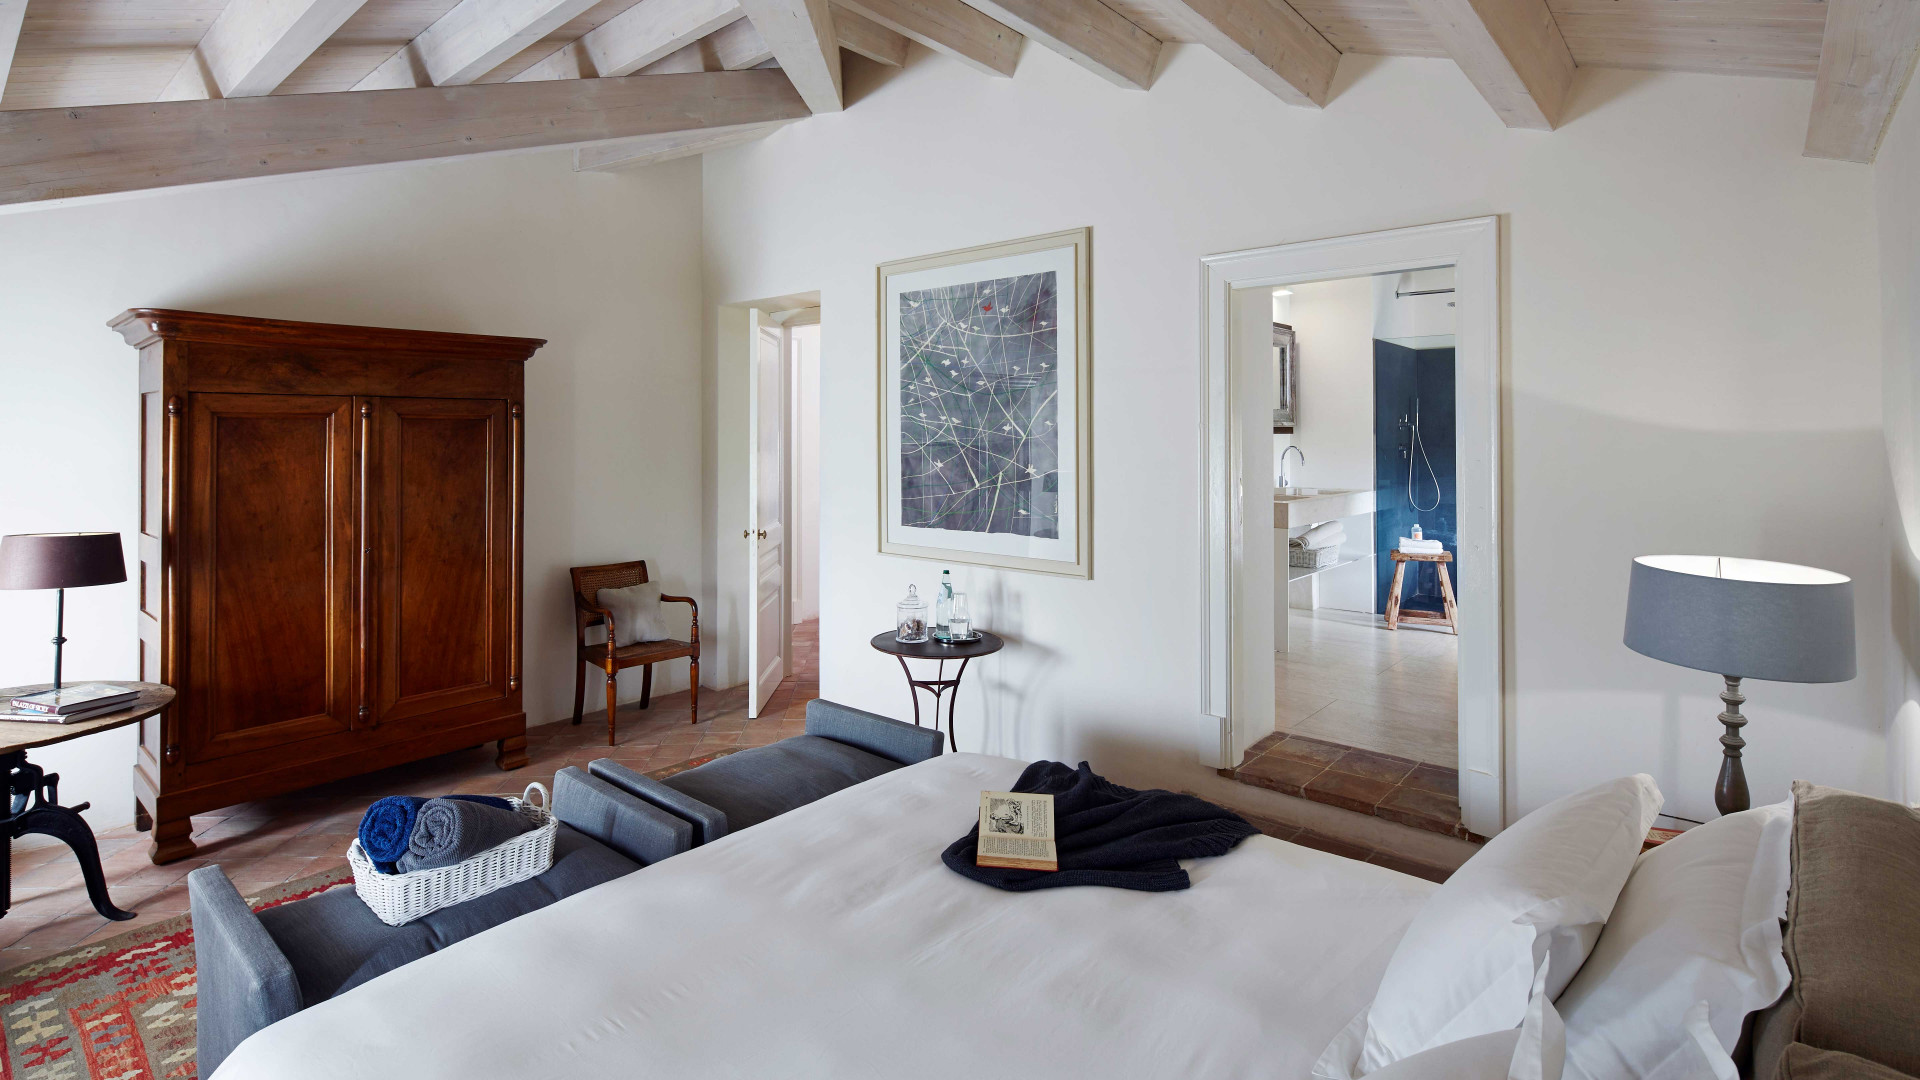 The luxurious bedrooms at Rocca delle Tre Contrade